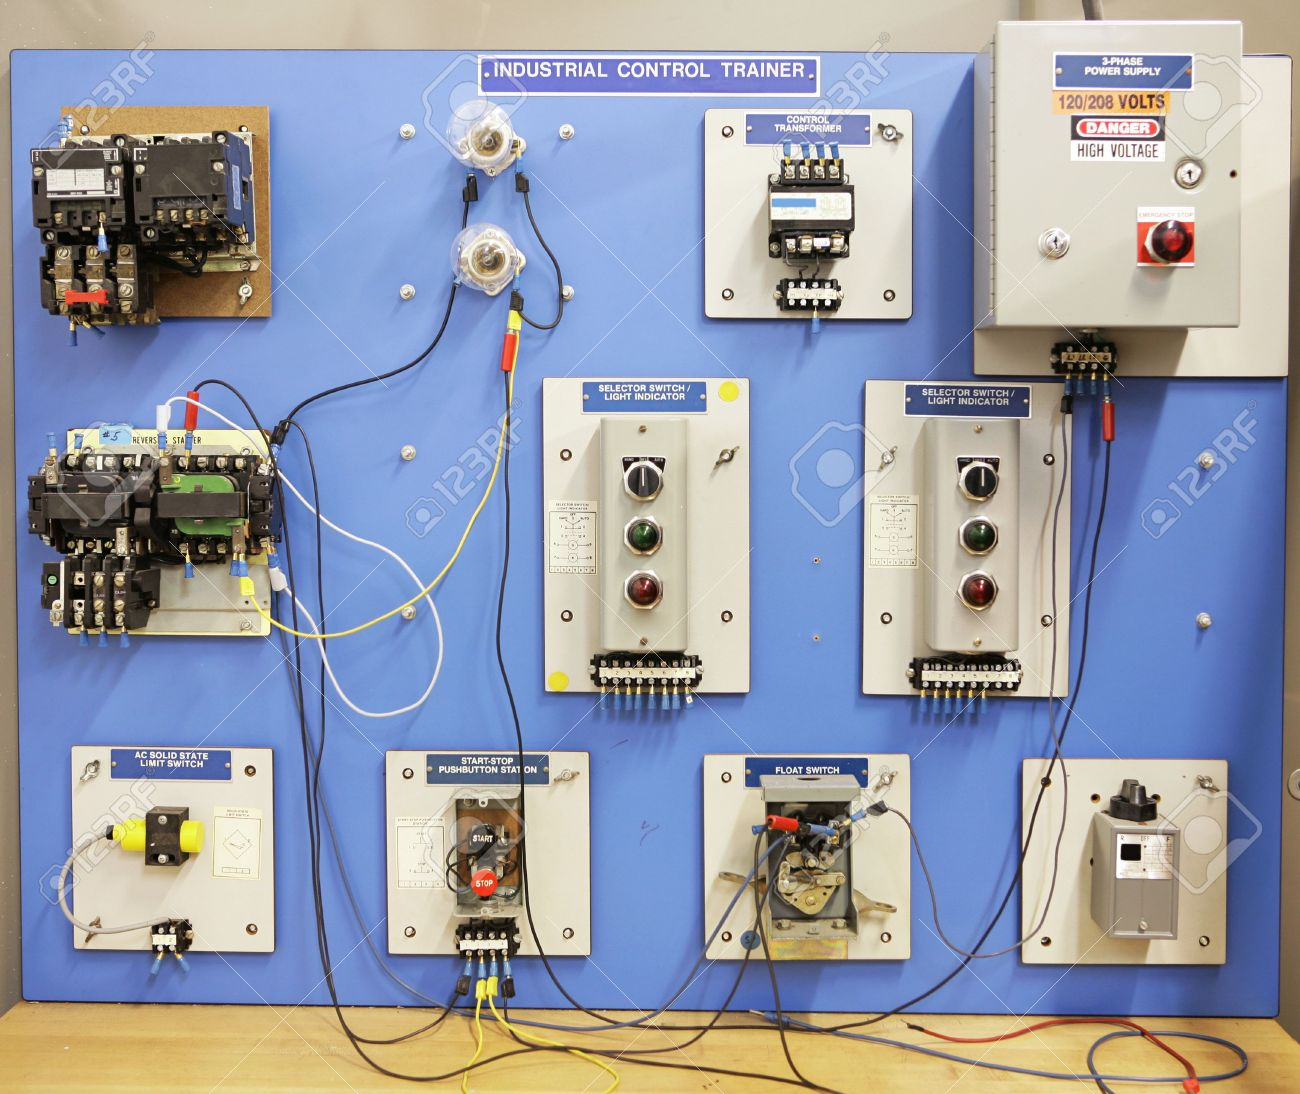 Basic Electrical Wiring Training Free Image About Diagram And Industrial Diagrams Home Phone